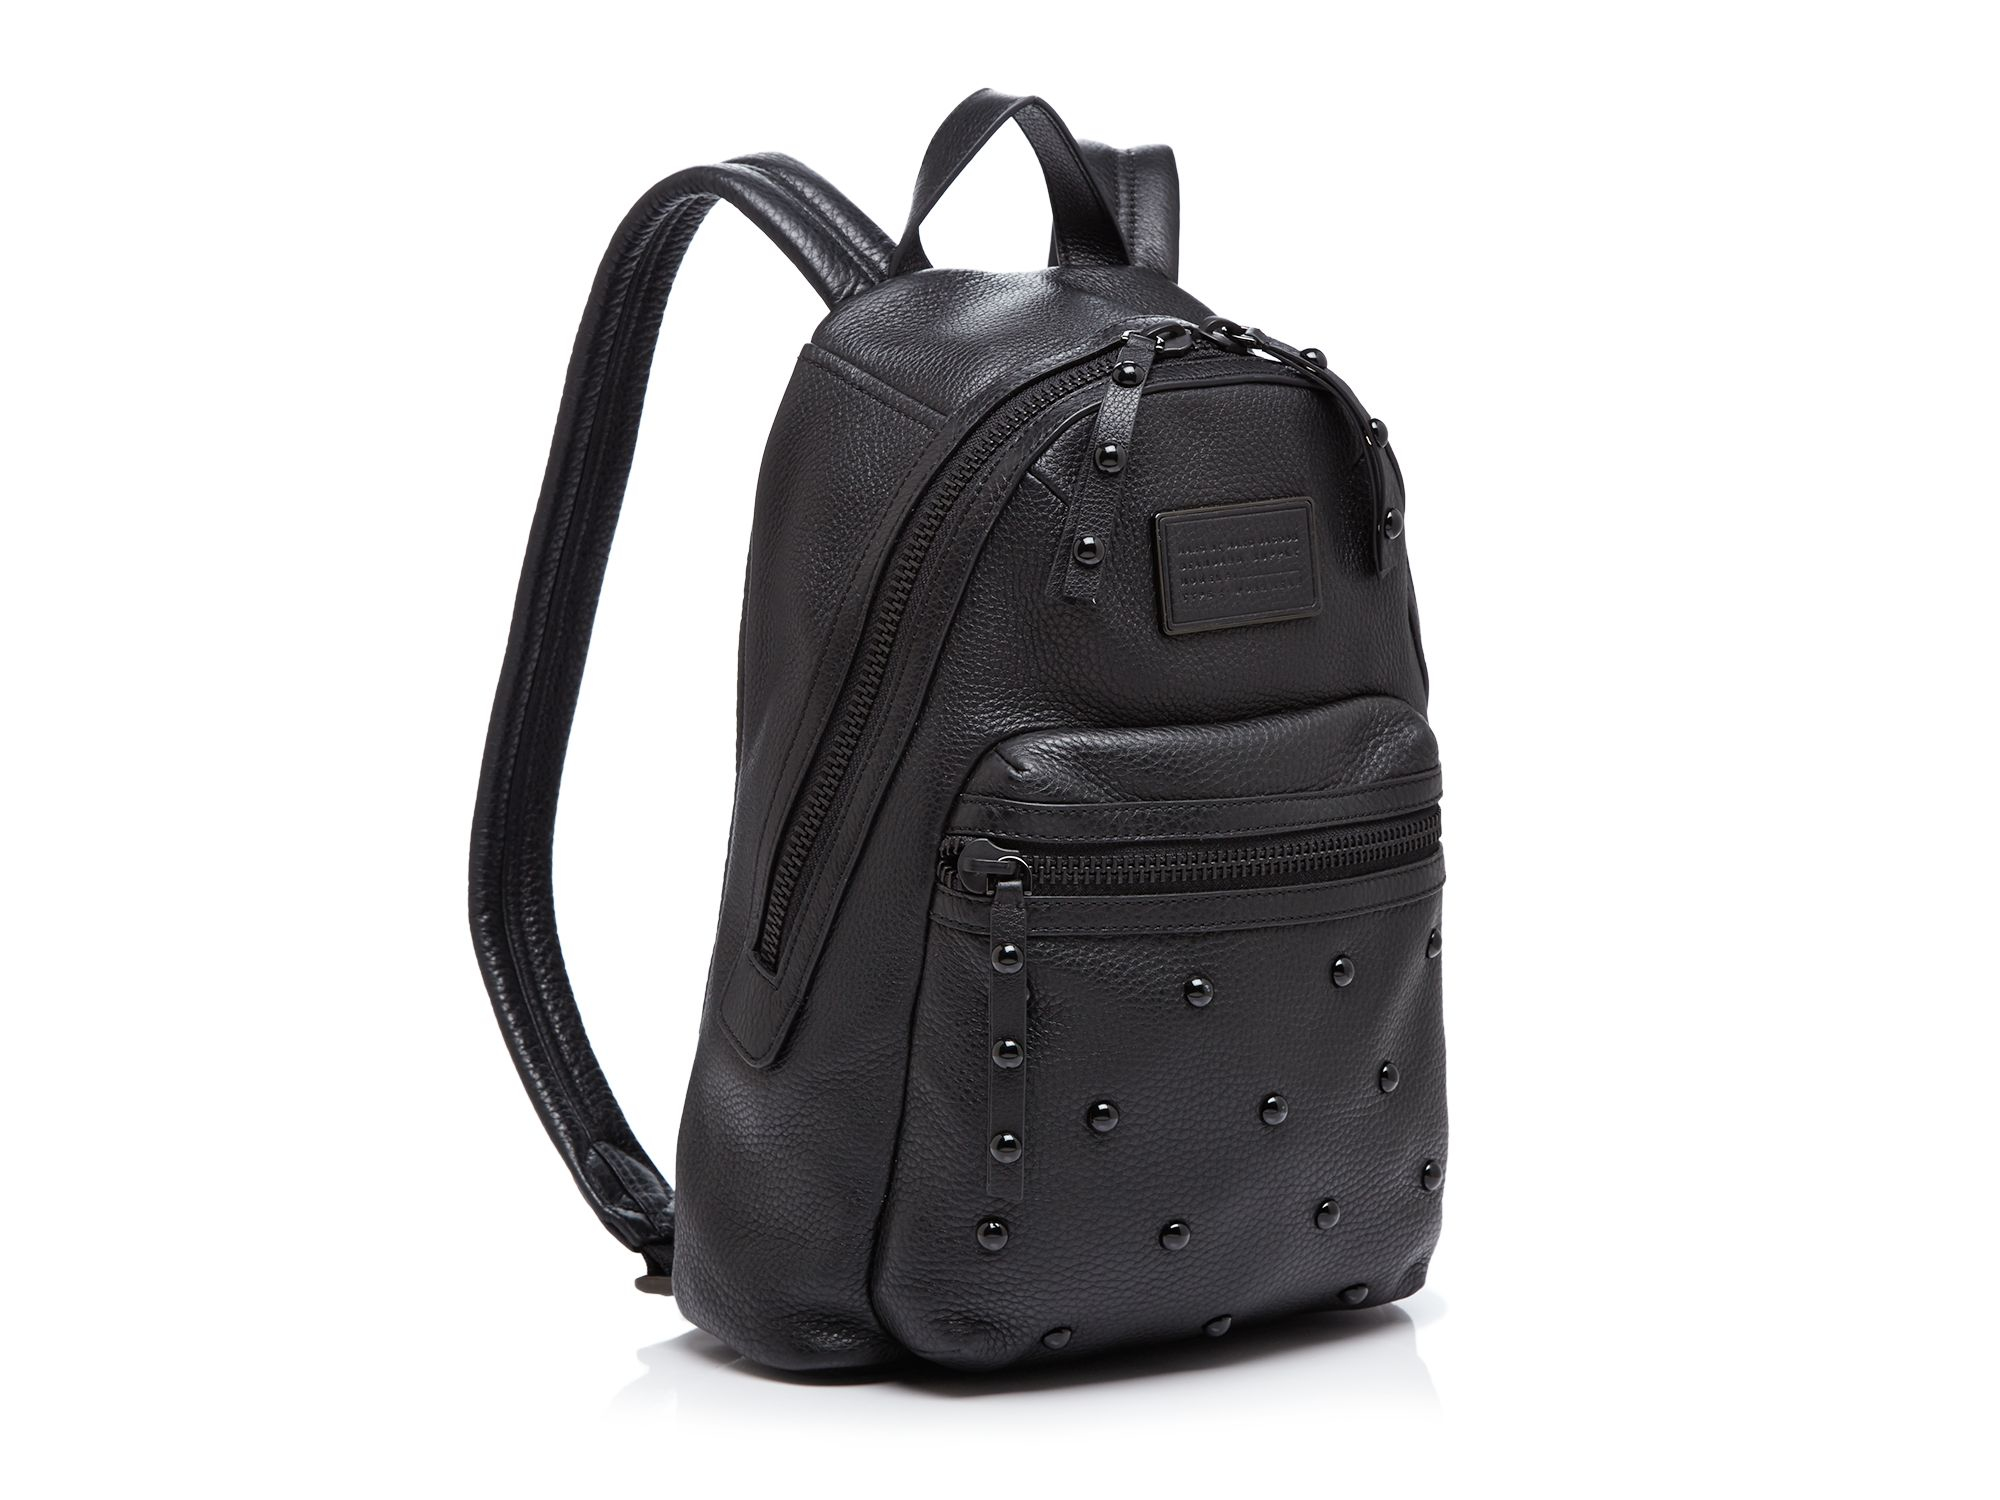 lyst marc by marc jacobs domo biker stud backpack in black. Black Bedroom Furniture Sets. Home Design Ideas